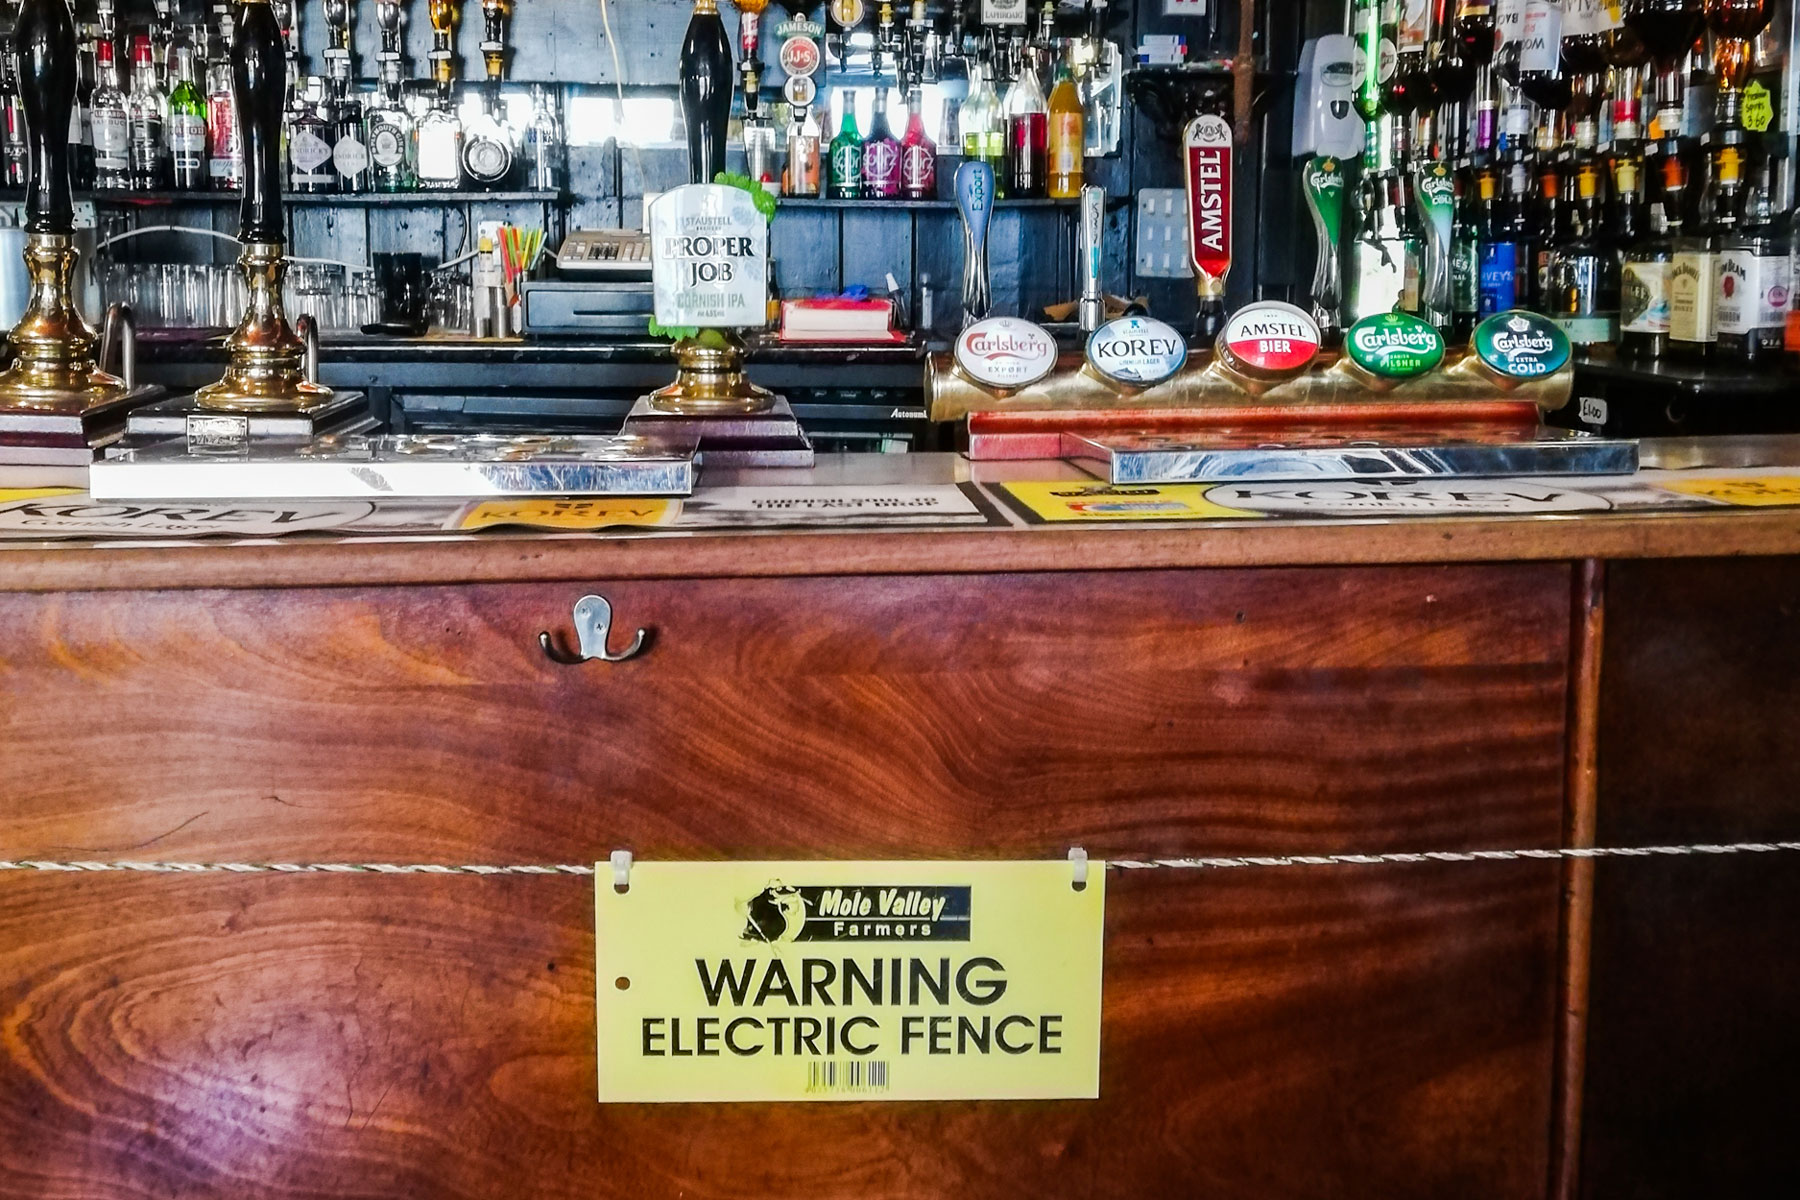 The Star Inn in St Just, Cornwall electric fence